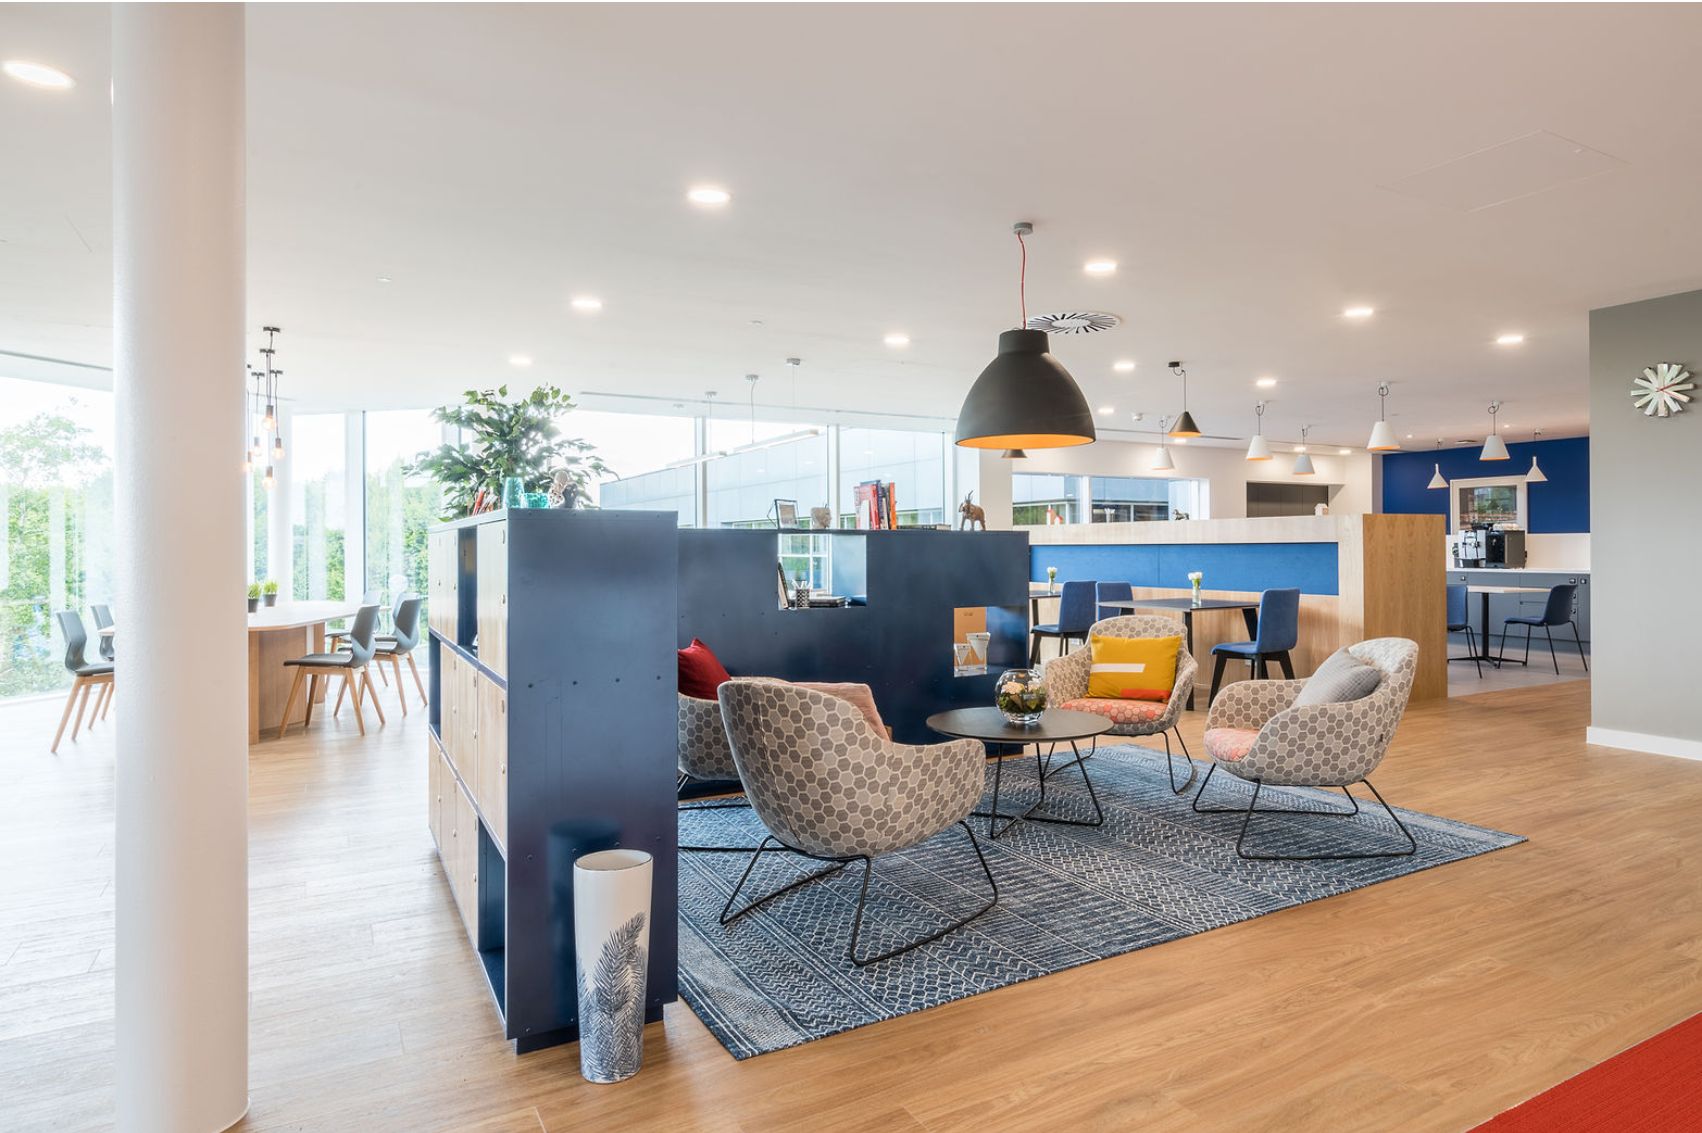 Example of open space, hotel-style amenities in offices at Winnersh Triangle.